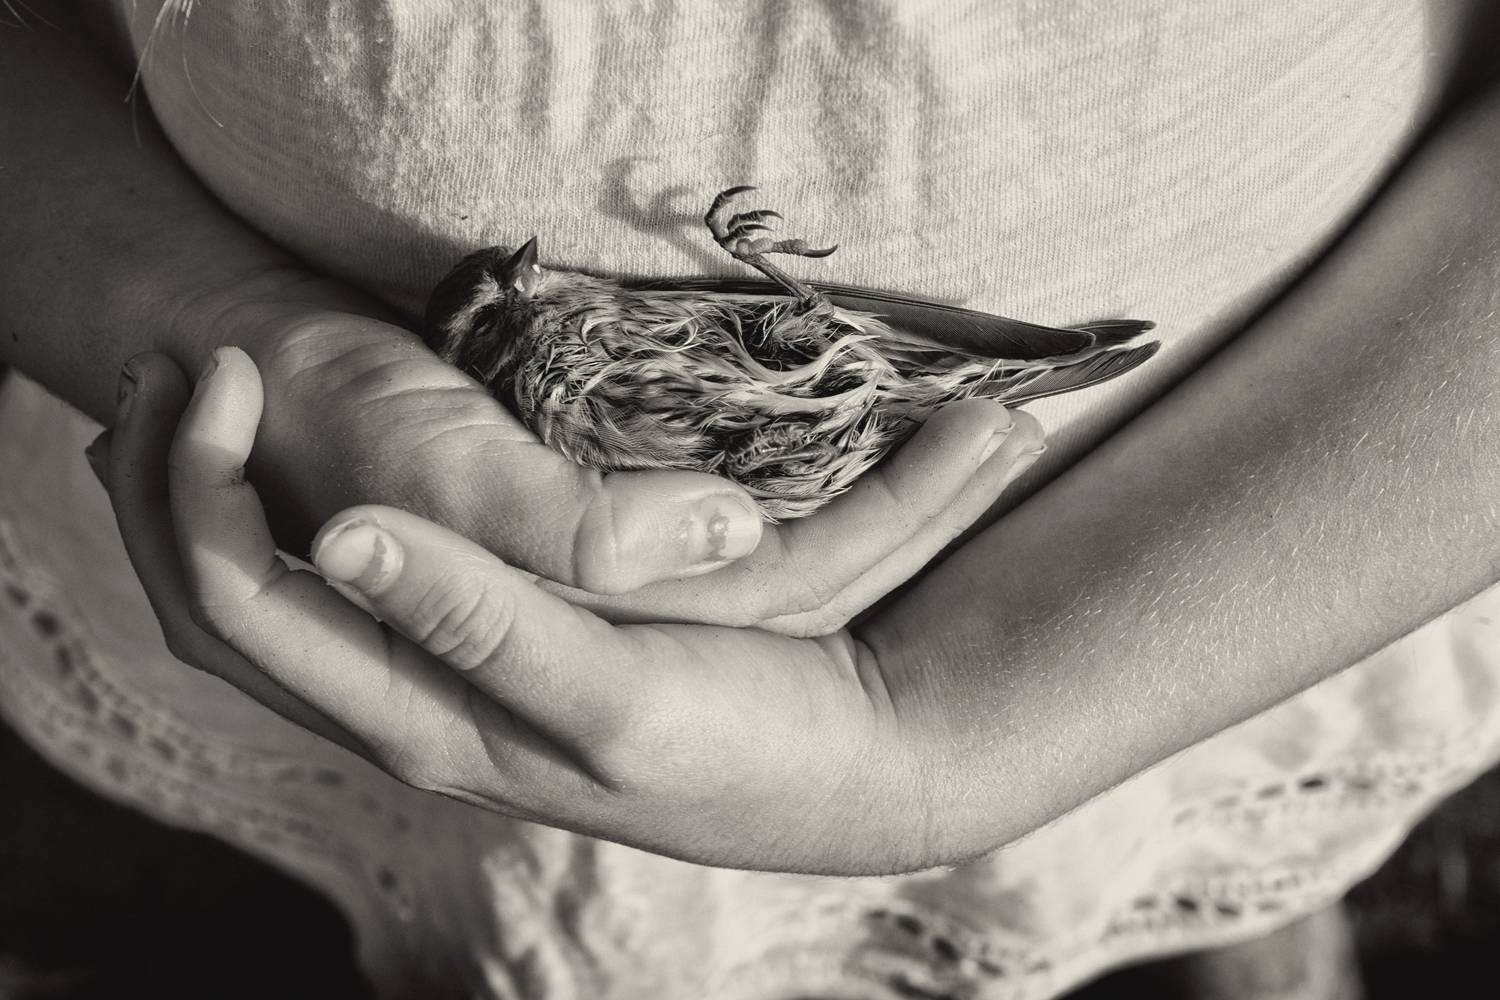 This image by Nolan Streitberger is from his series <i>Long Summer Days</i>, which follows his daughter's journey through childhood as an only child living a device-free lifestyle. The photograph depicts the little girl's hands at waist-level, cradling an injured sparrow.